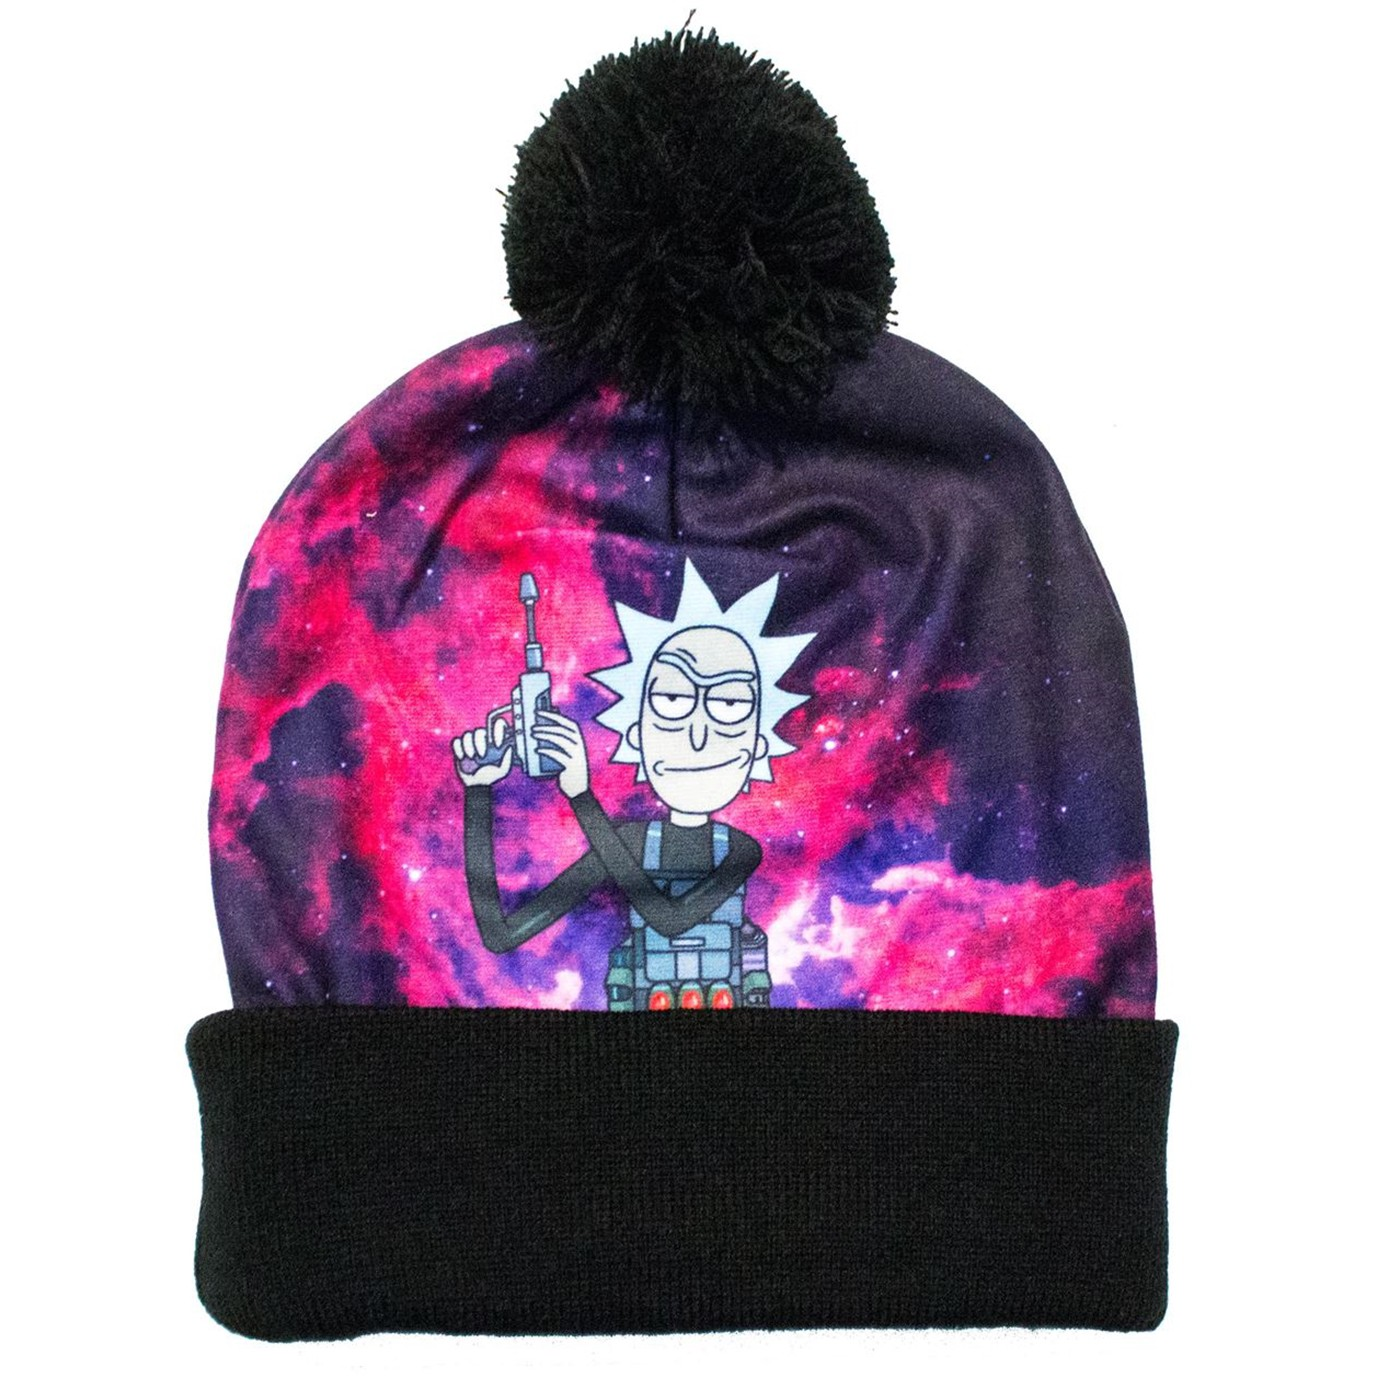 Ricky and Morty Pom Beanie